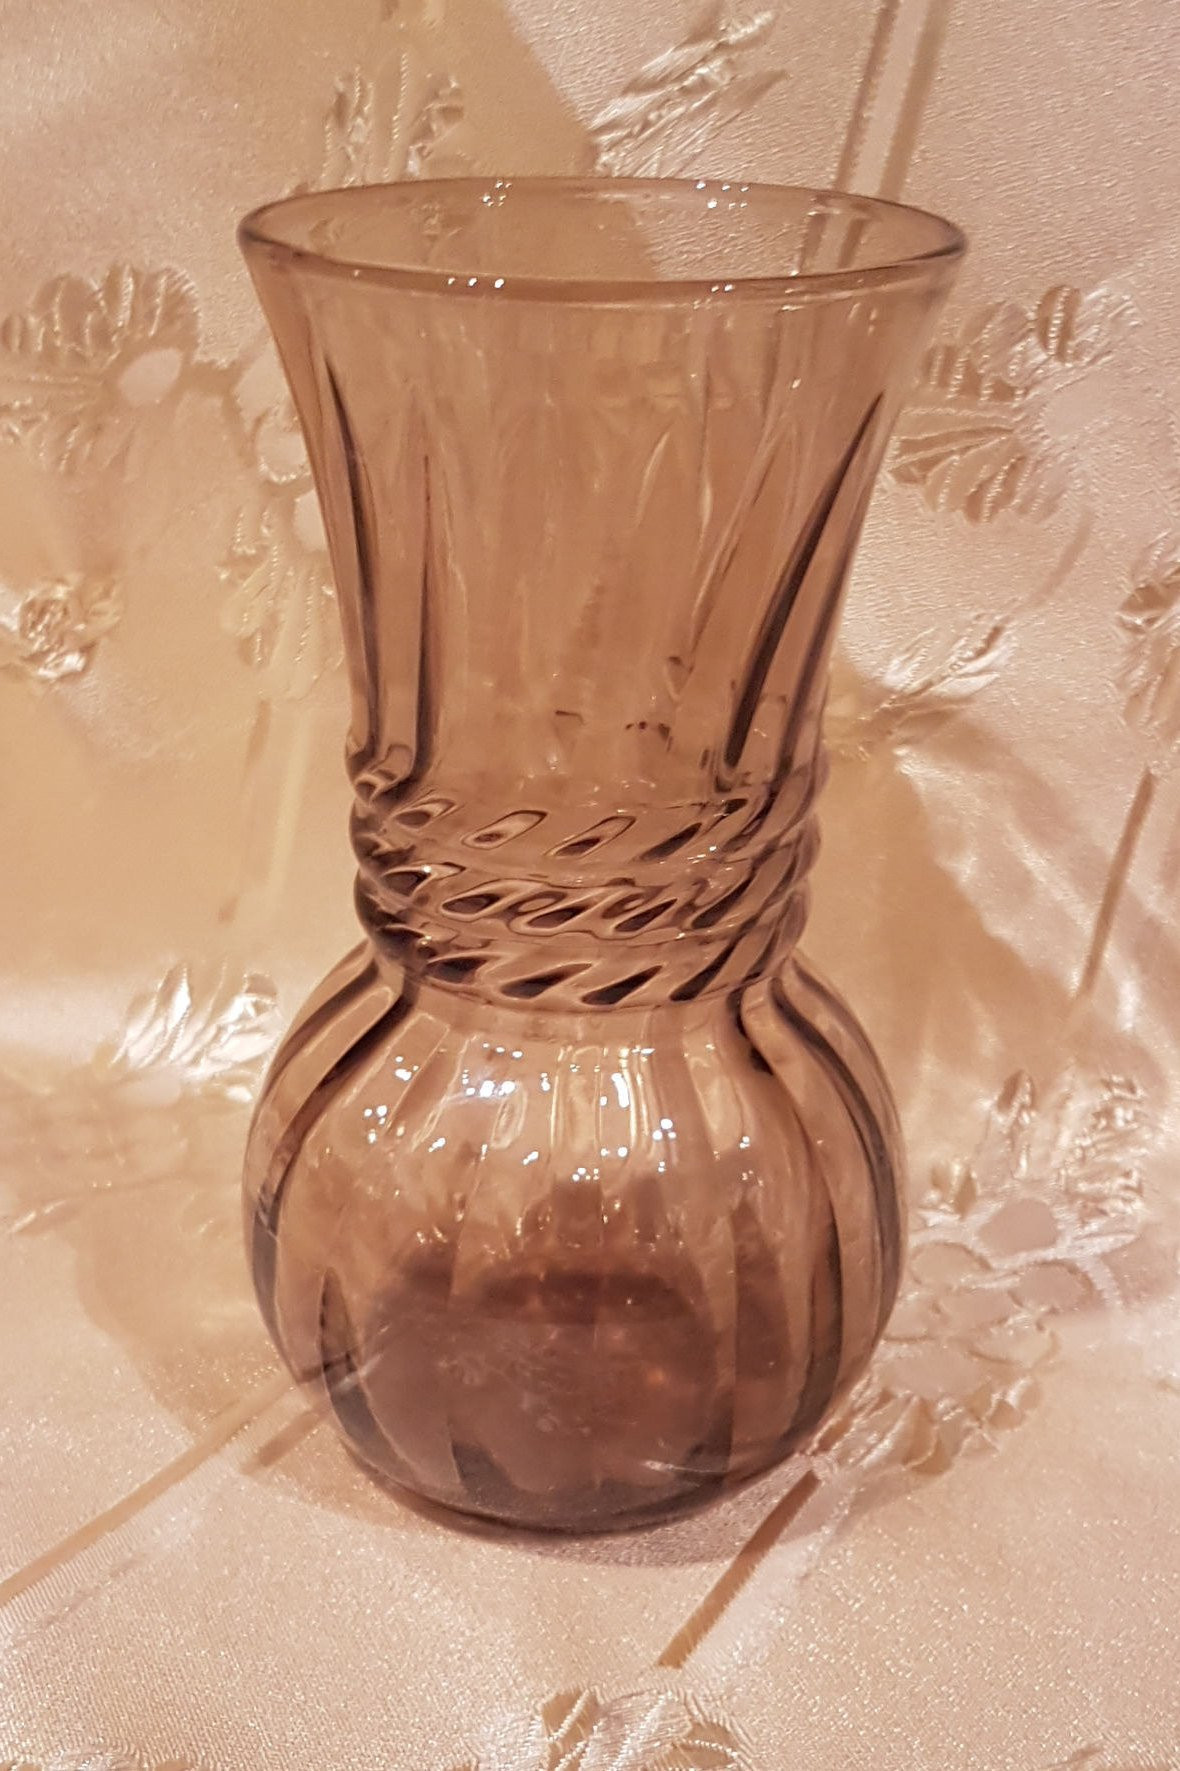 20 inch tall glass vases of anchor hocking vintage smoke brown optic swirl glass vase for il fullxfull 1478201037 65uu